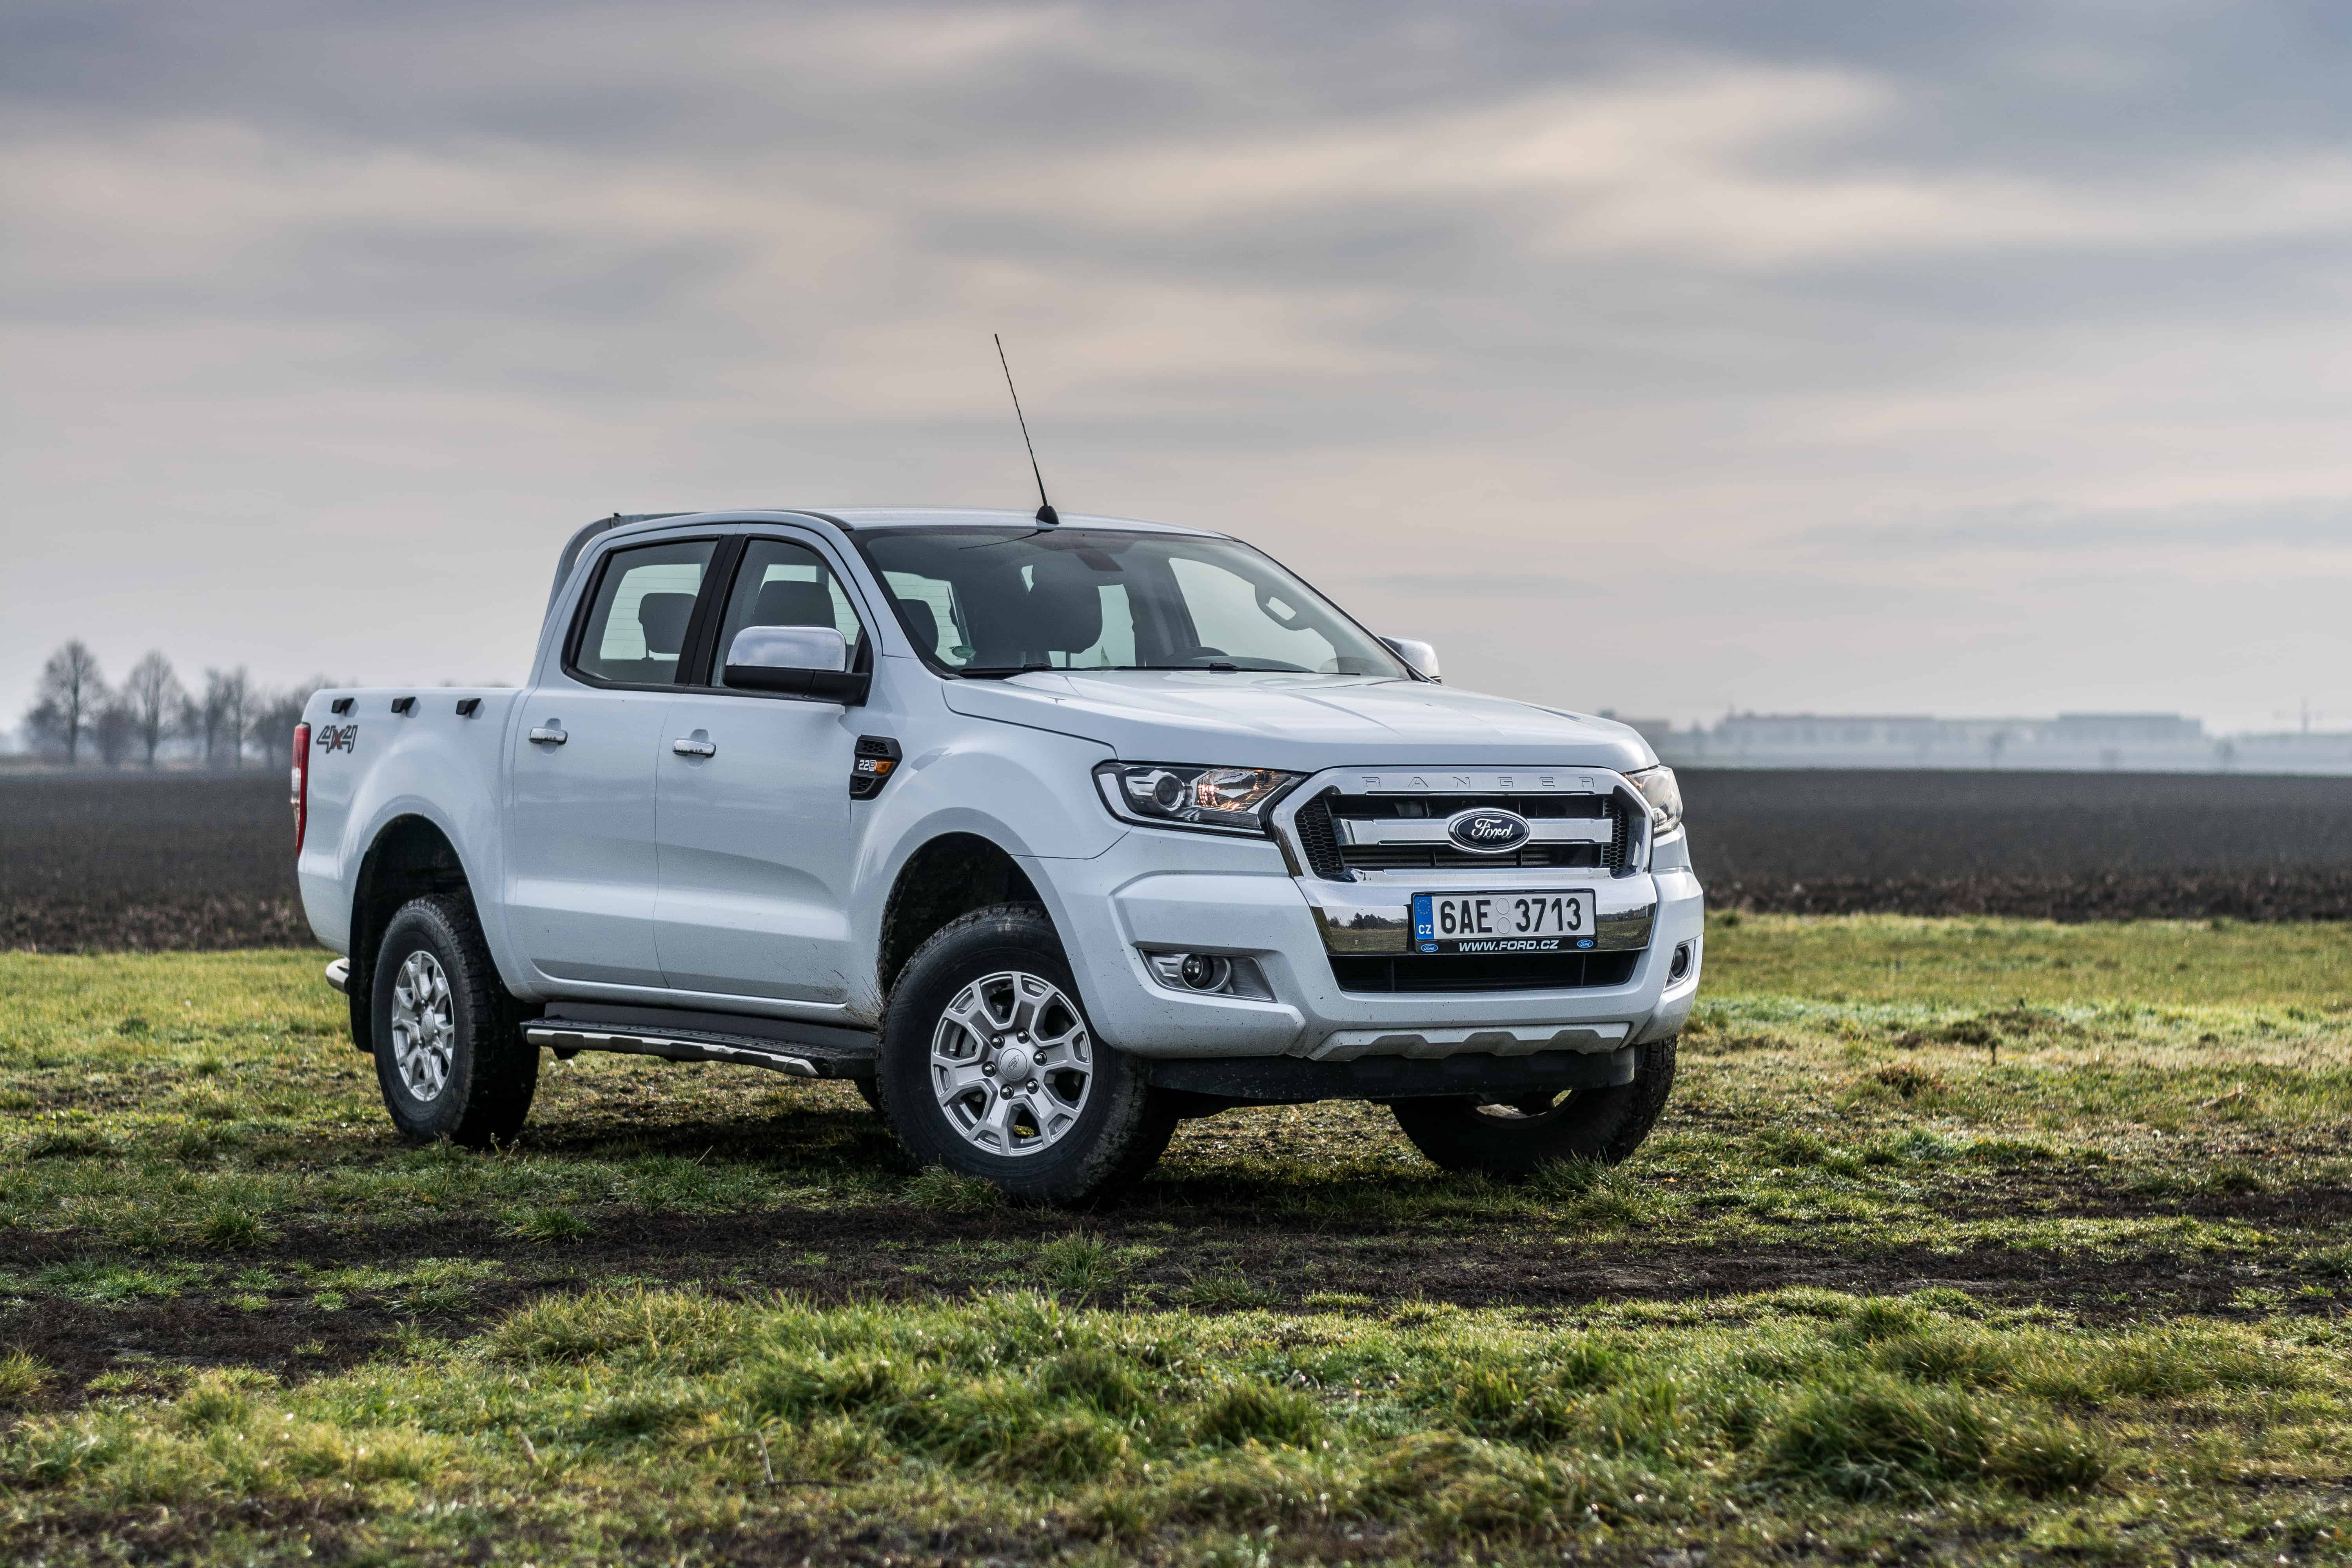 Ford Rangers Under Recall Due To Seat Belt Defect